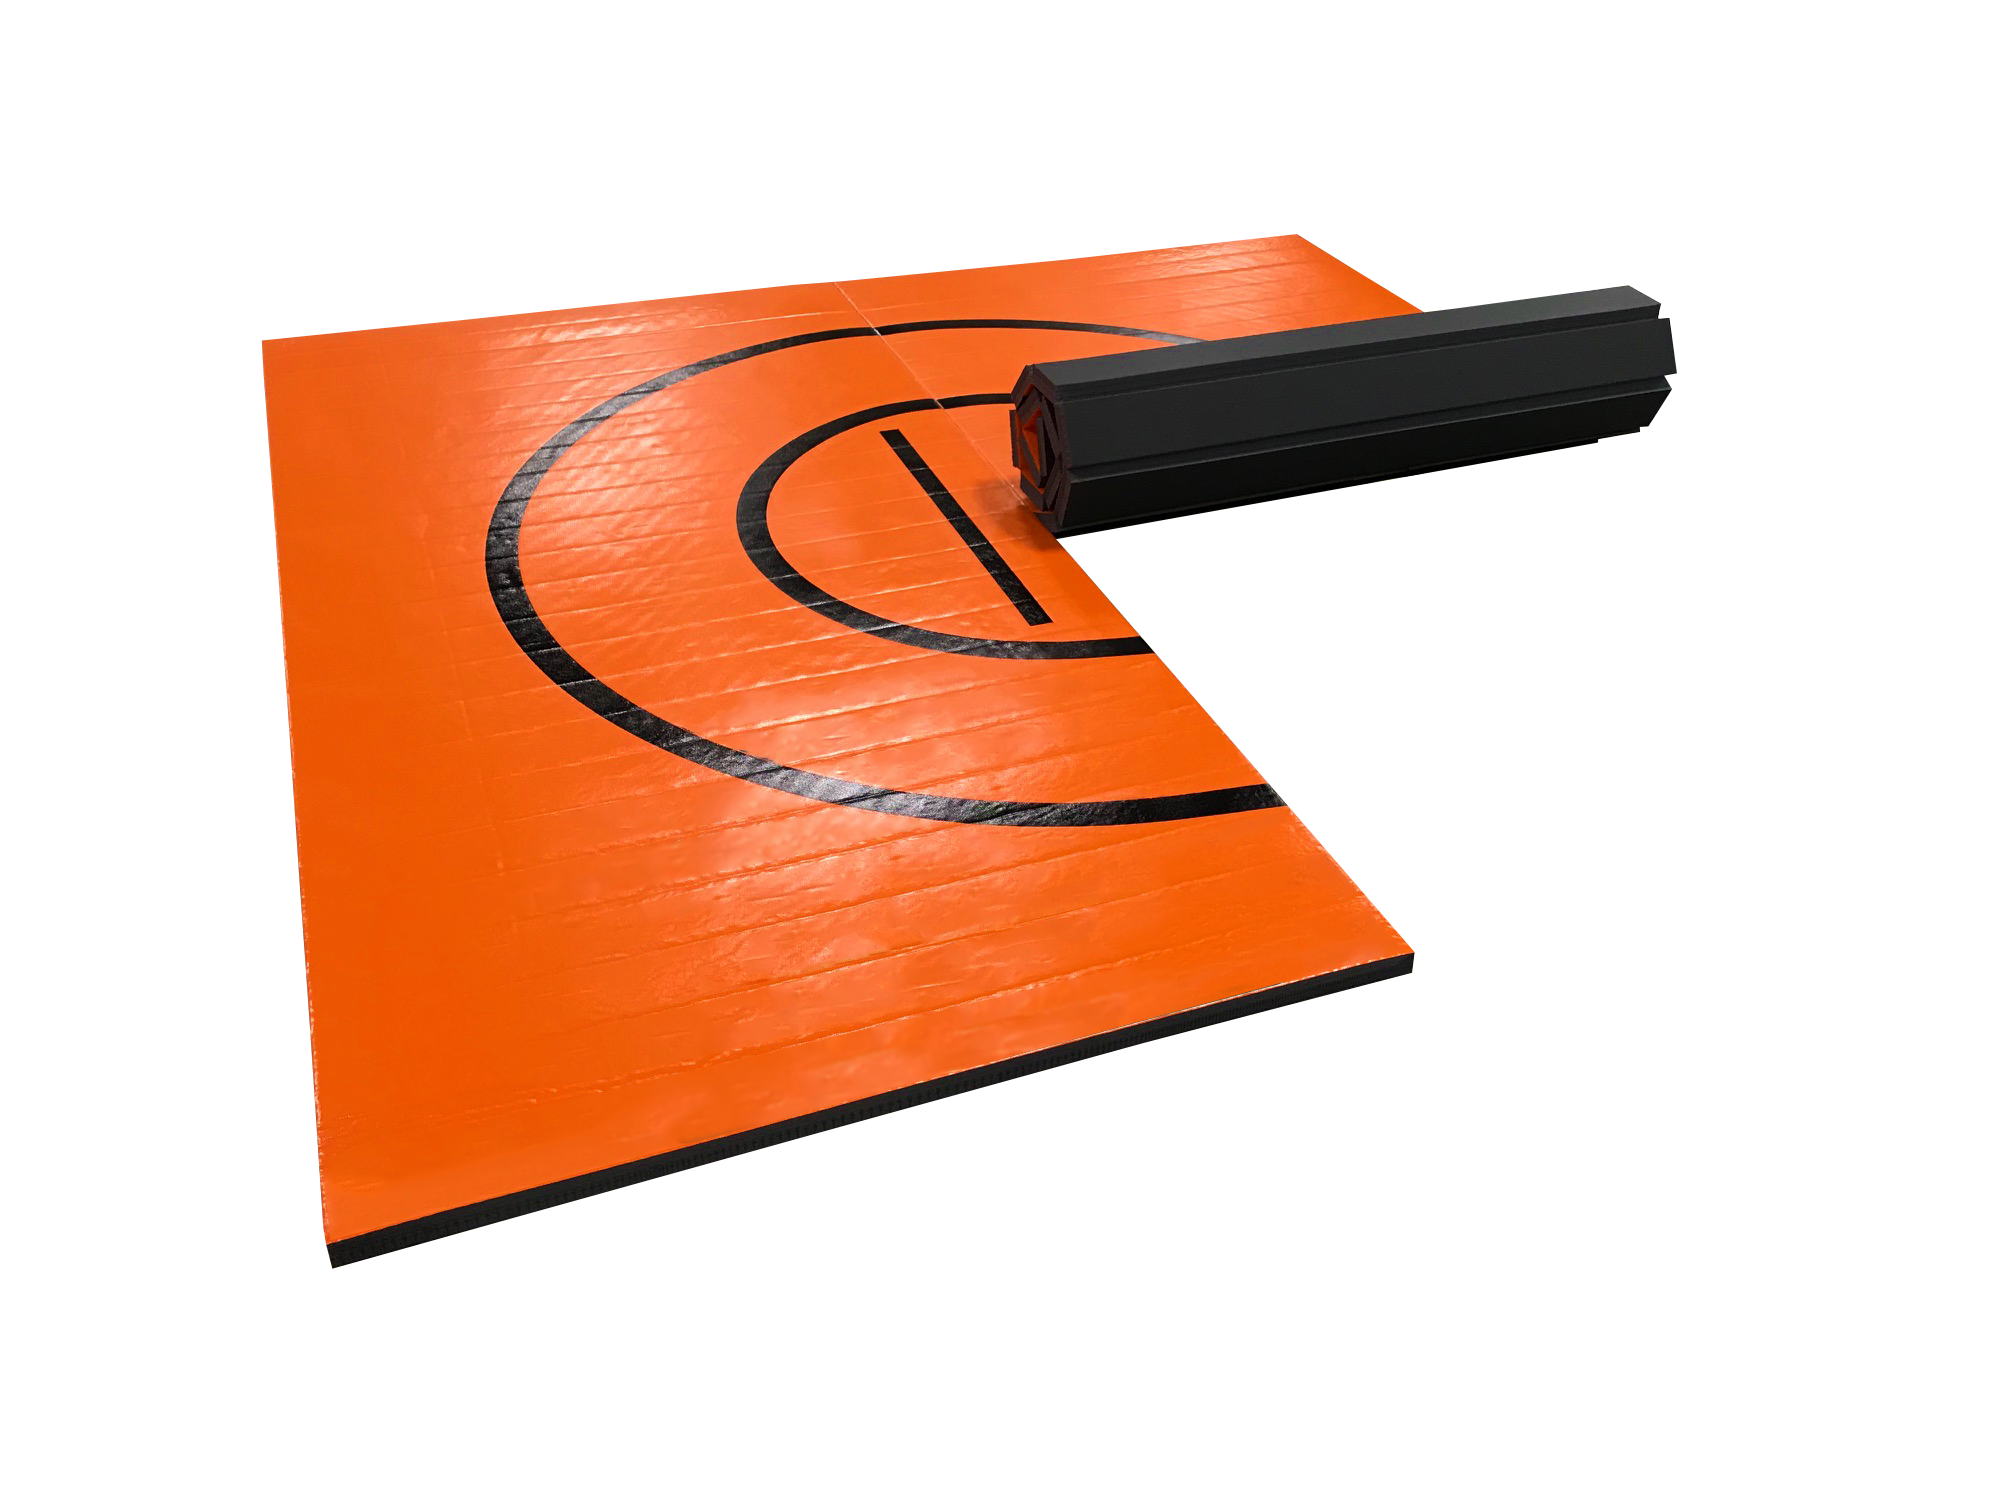 "8' x 8' x 1 3/8"" Orange Roll-Up Wrestling Mat"